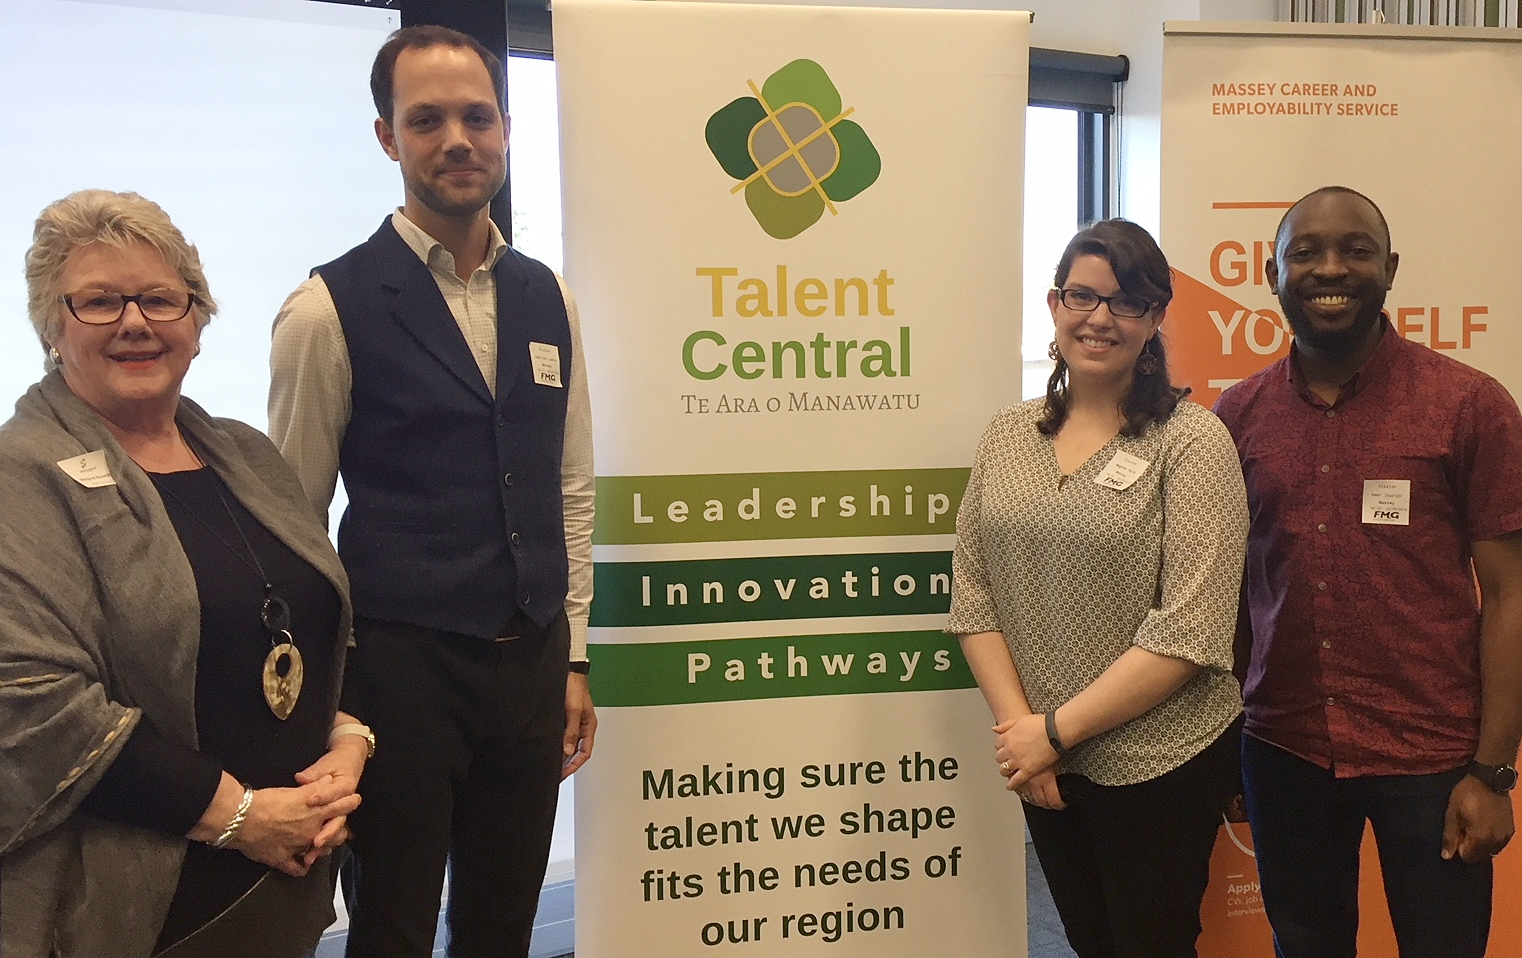 Talent Central CEO Margaret Kouvelis, with Massey Doctoral Students Gabriel Laeis, Seer Ikurior and Meghan Keck